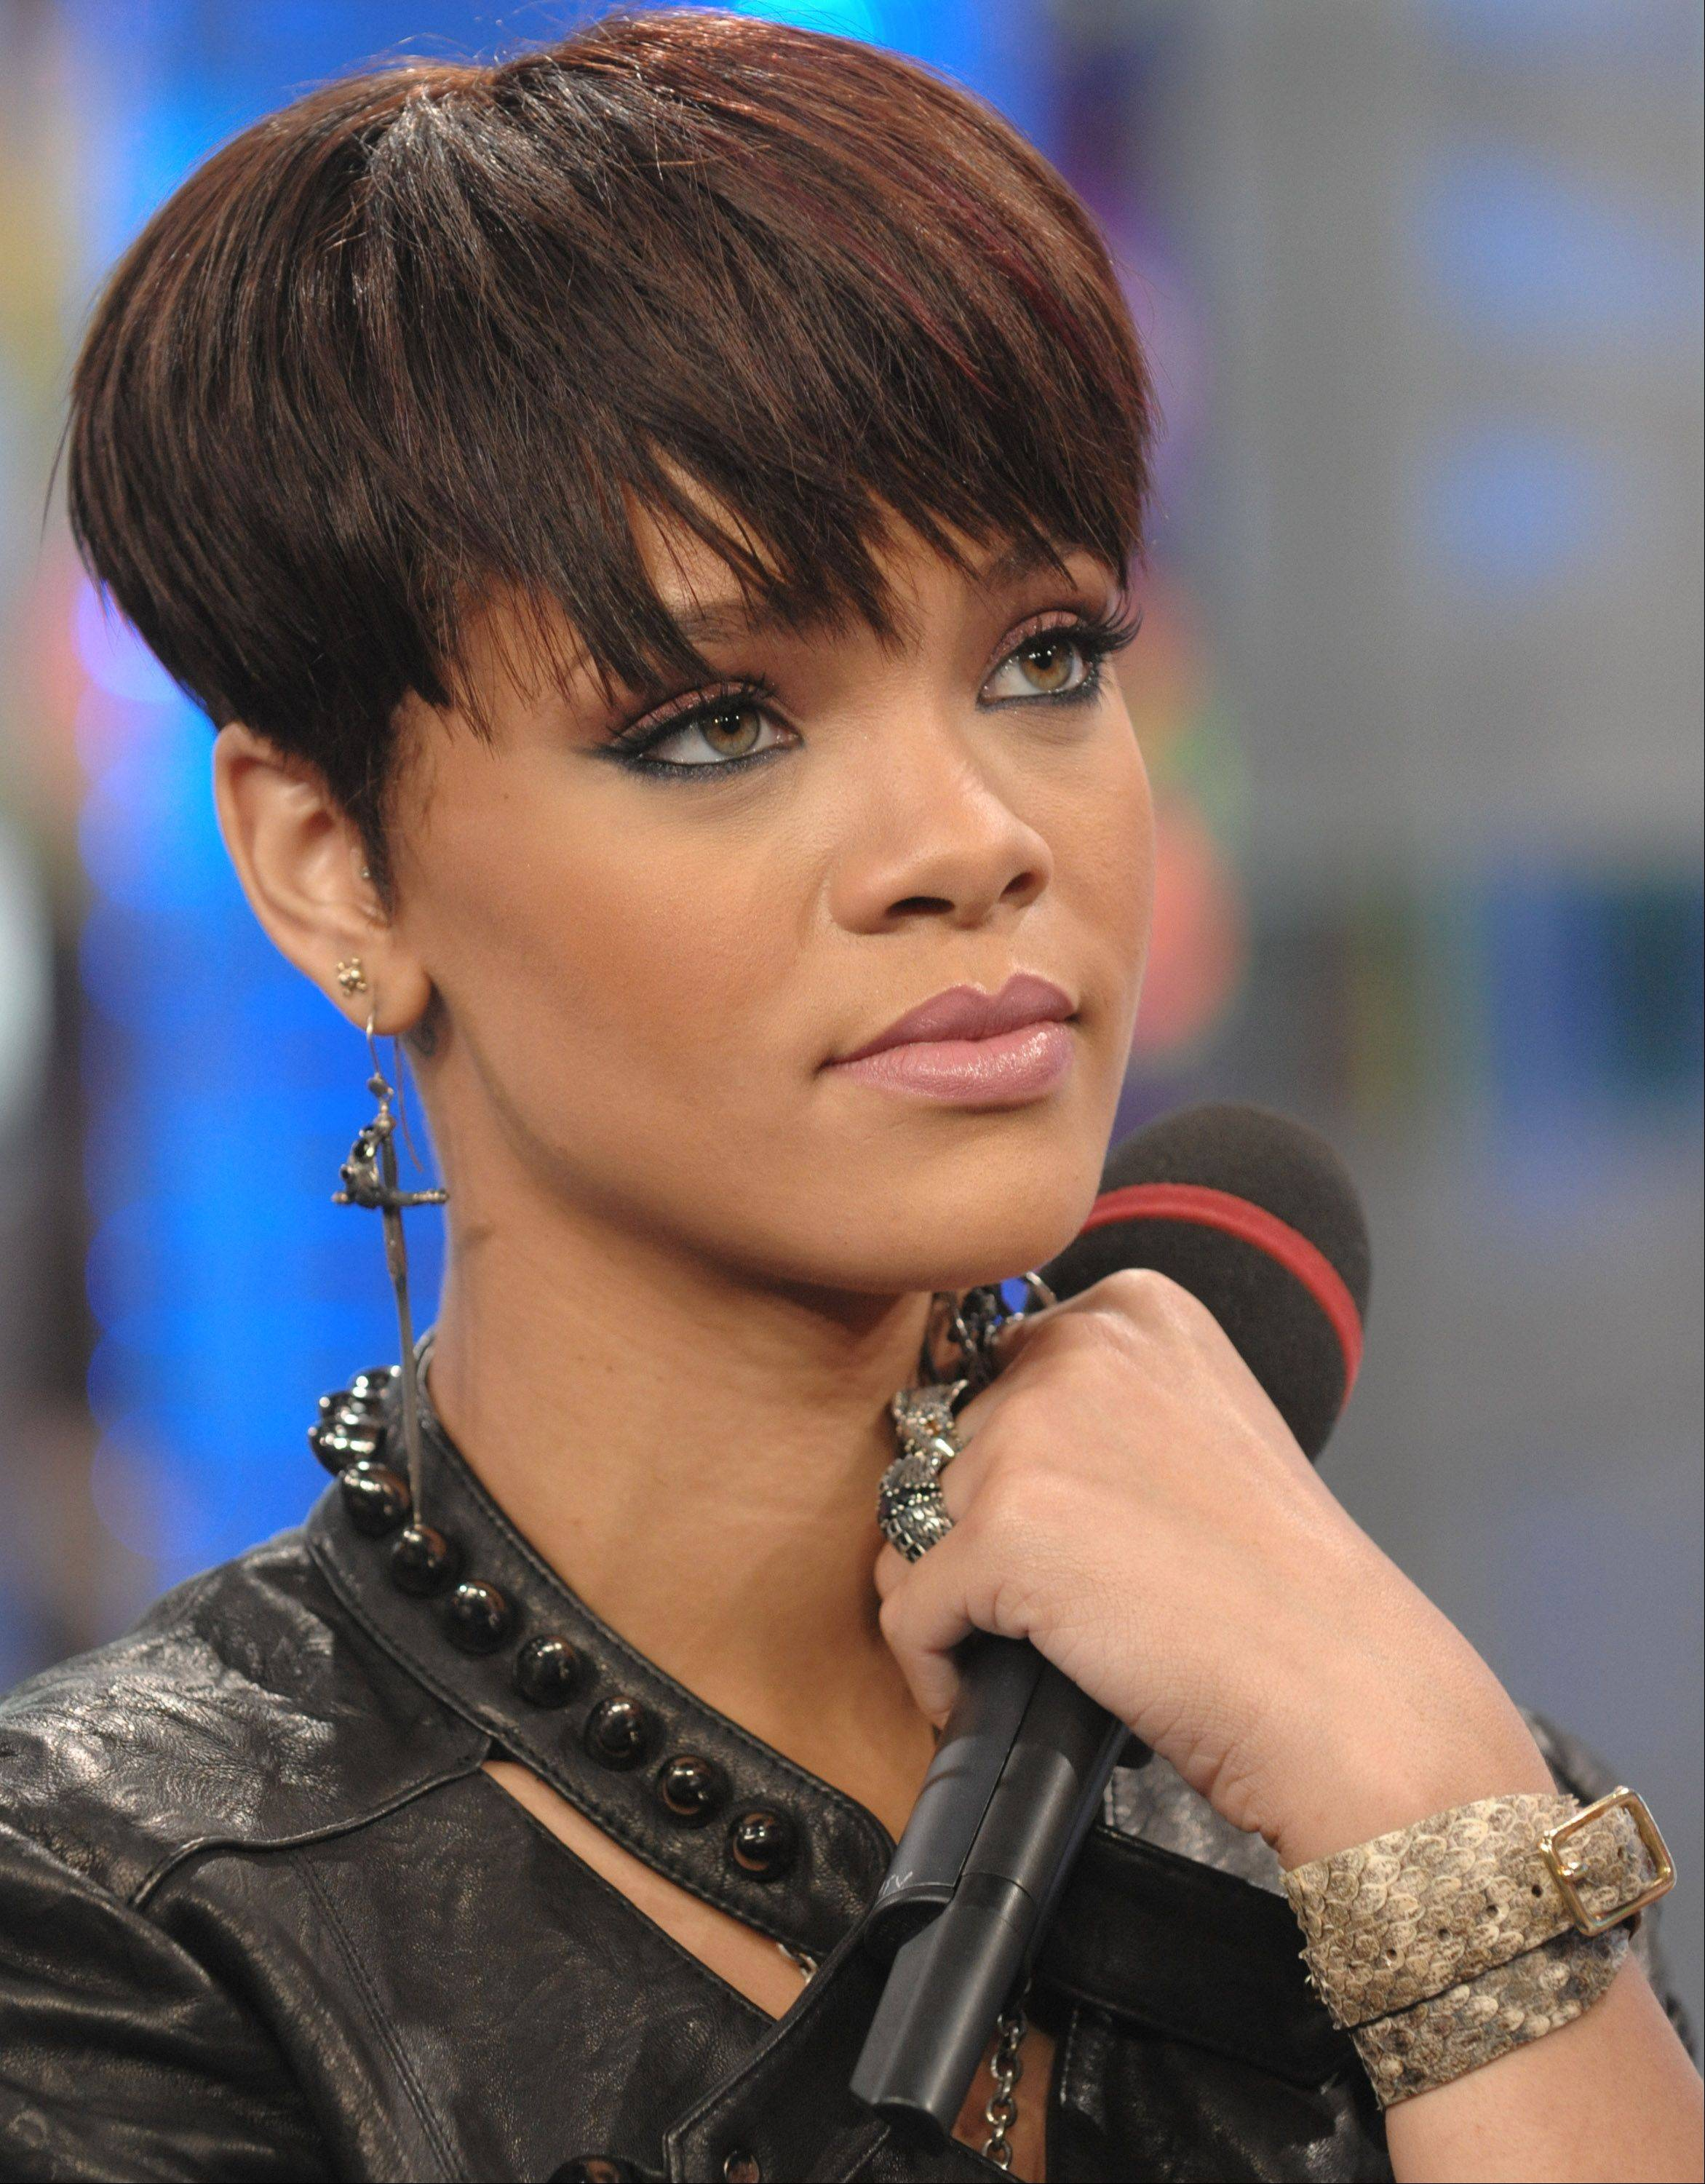 Singer Rihanna makes an appearance on MTV's Total Request Live in New York in 2008.